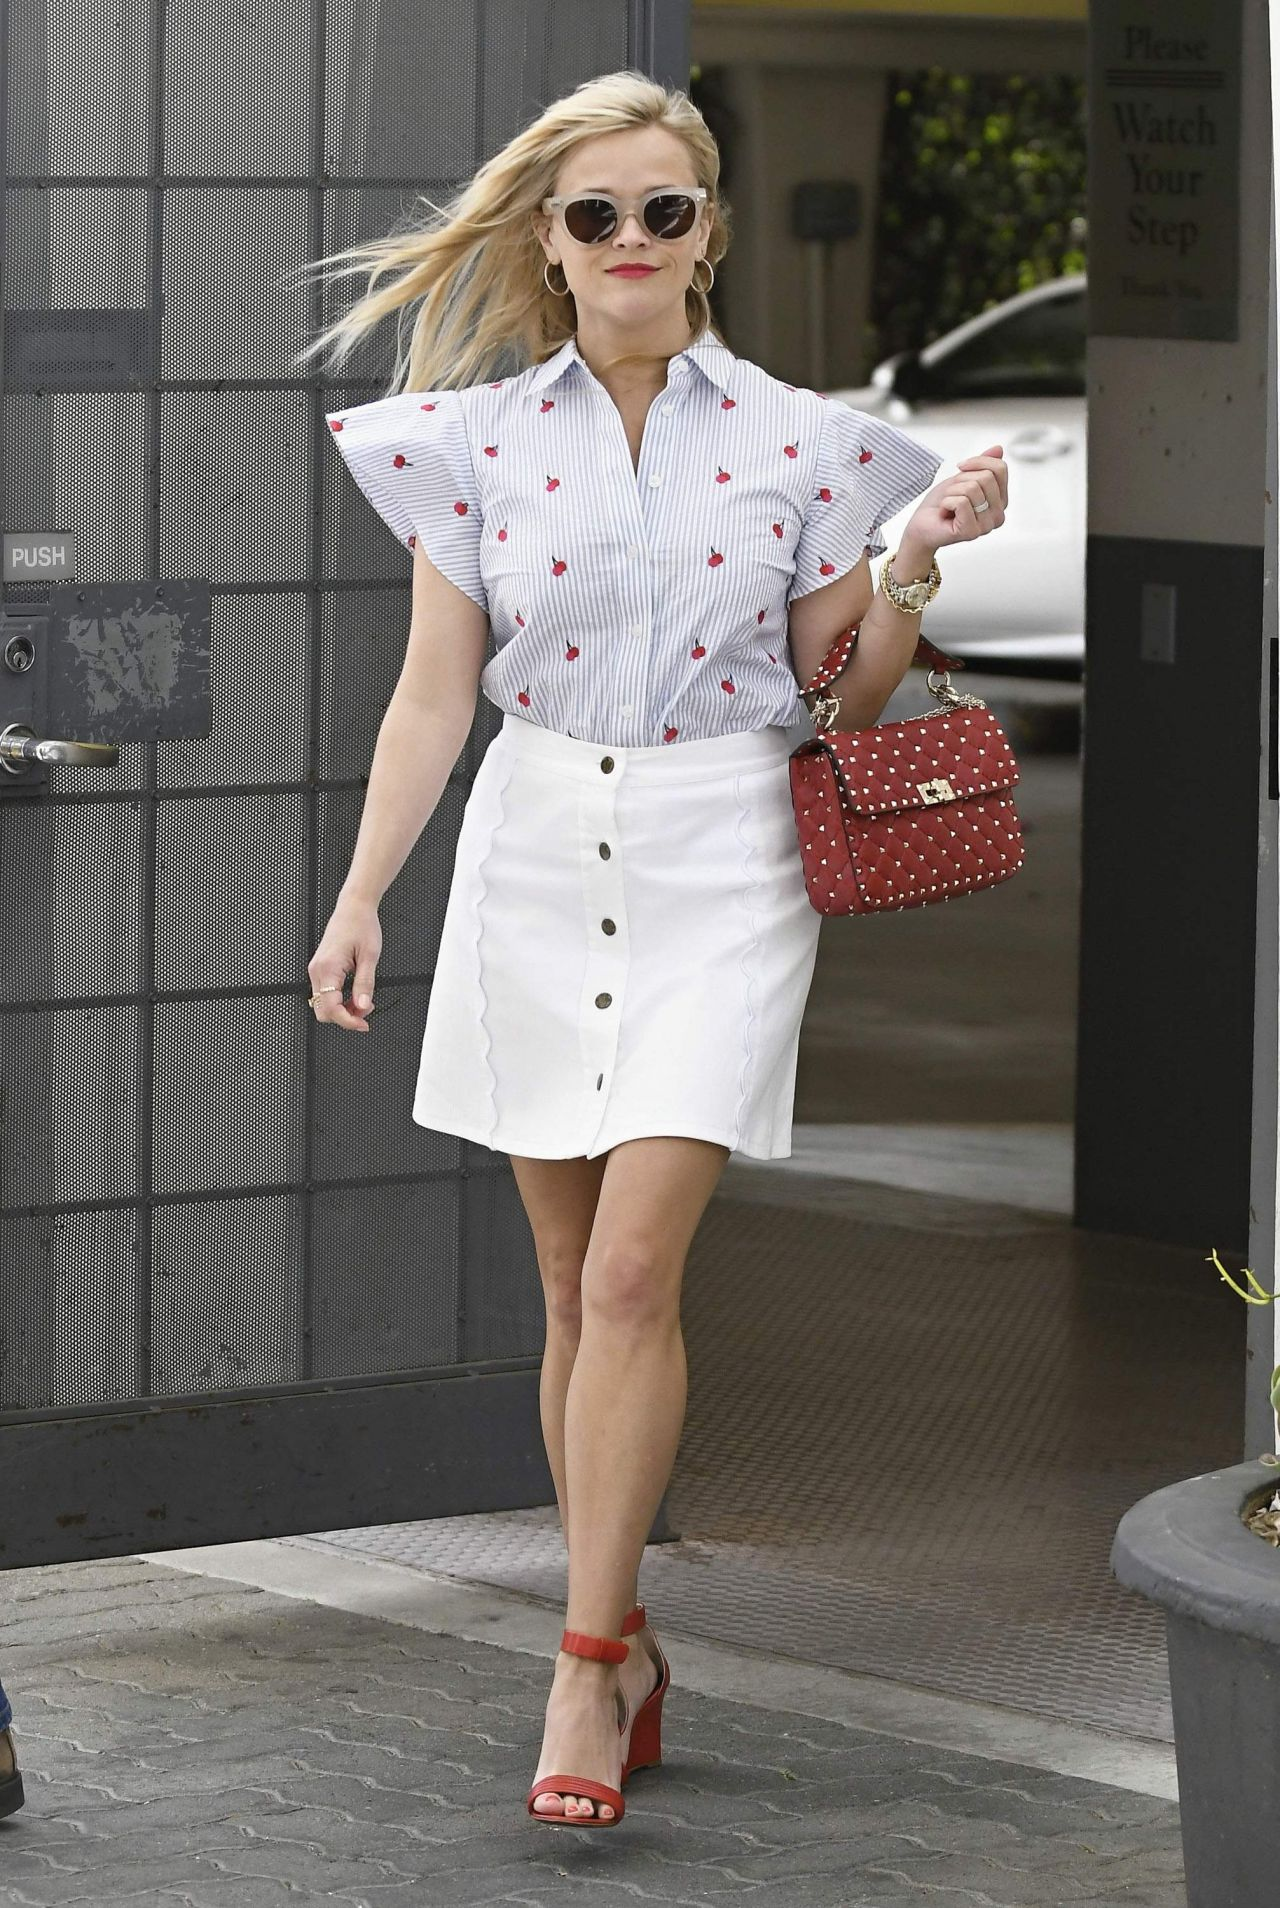 Reese Witherspoon Chic Street Style - Out in Los Angeles ... Reese Witherspoon